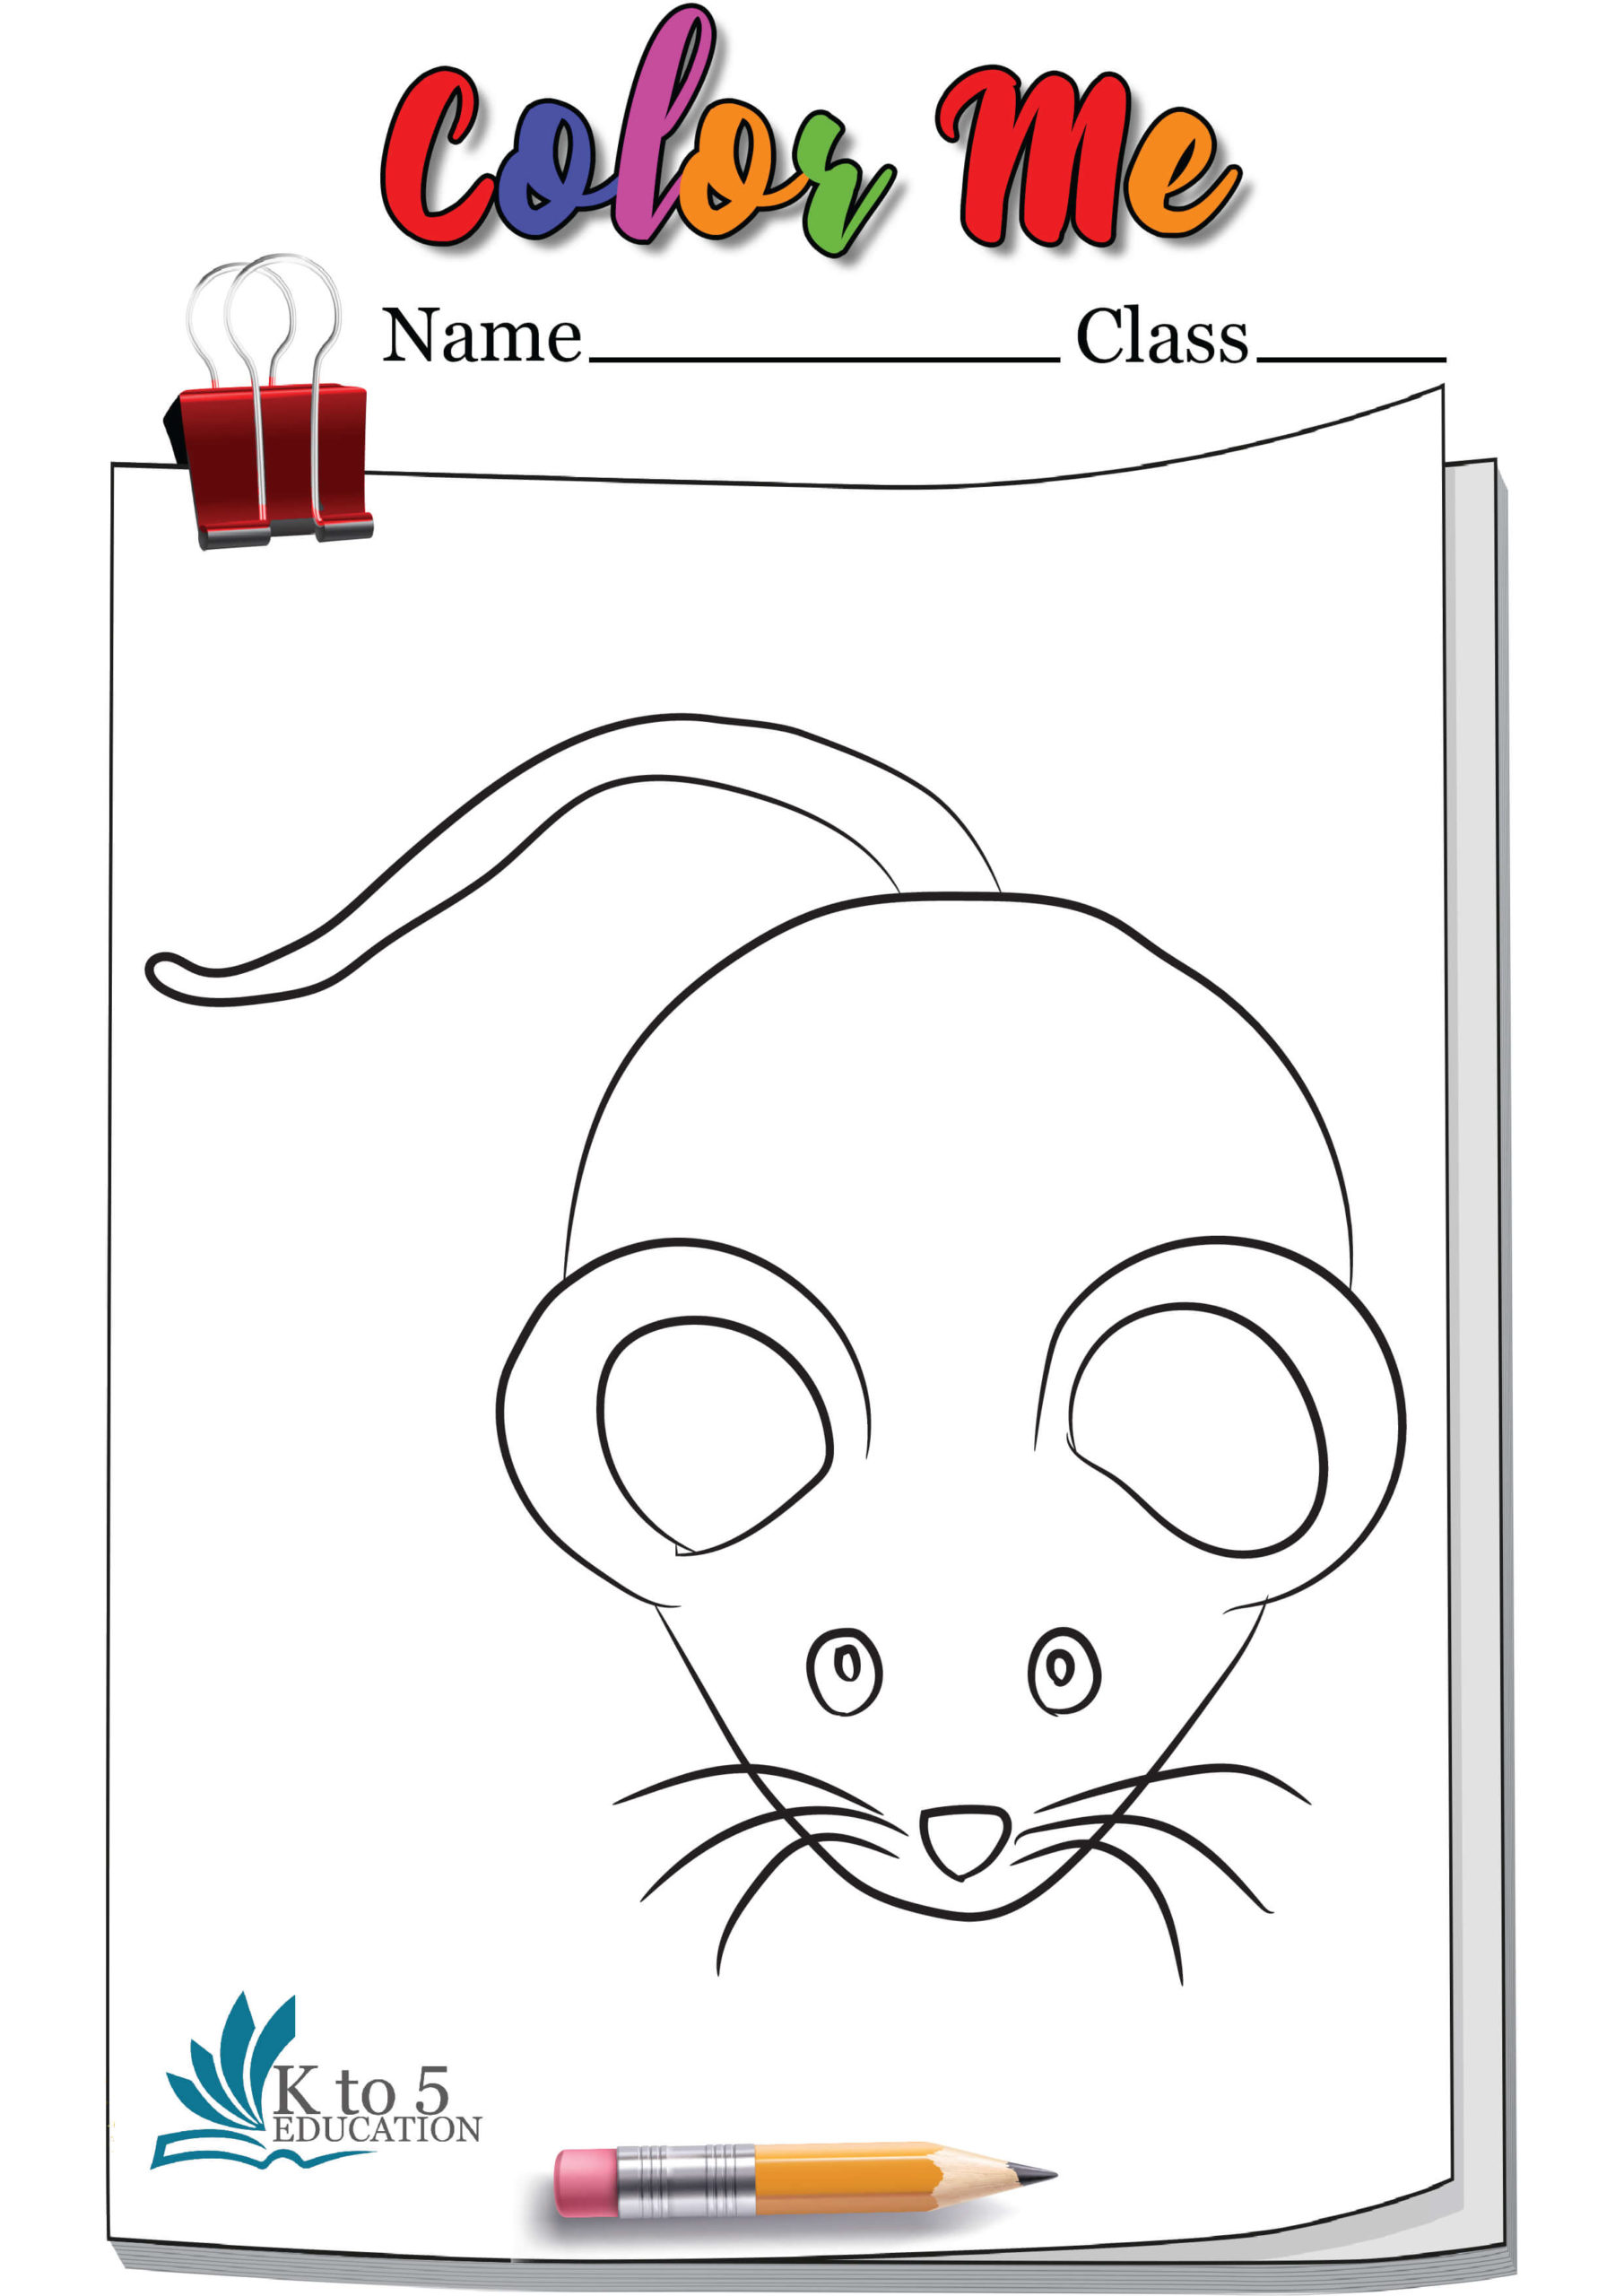 Rat Ready to Run Coloring Page Worksheet